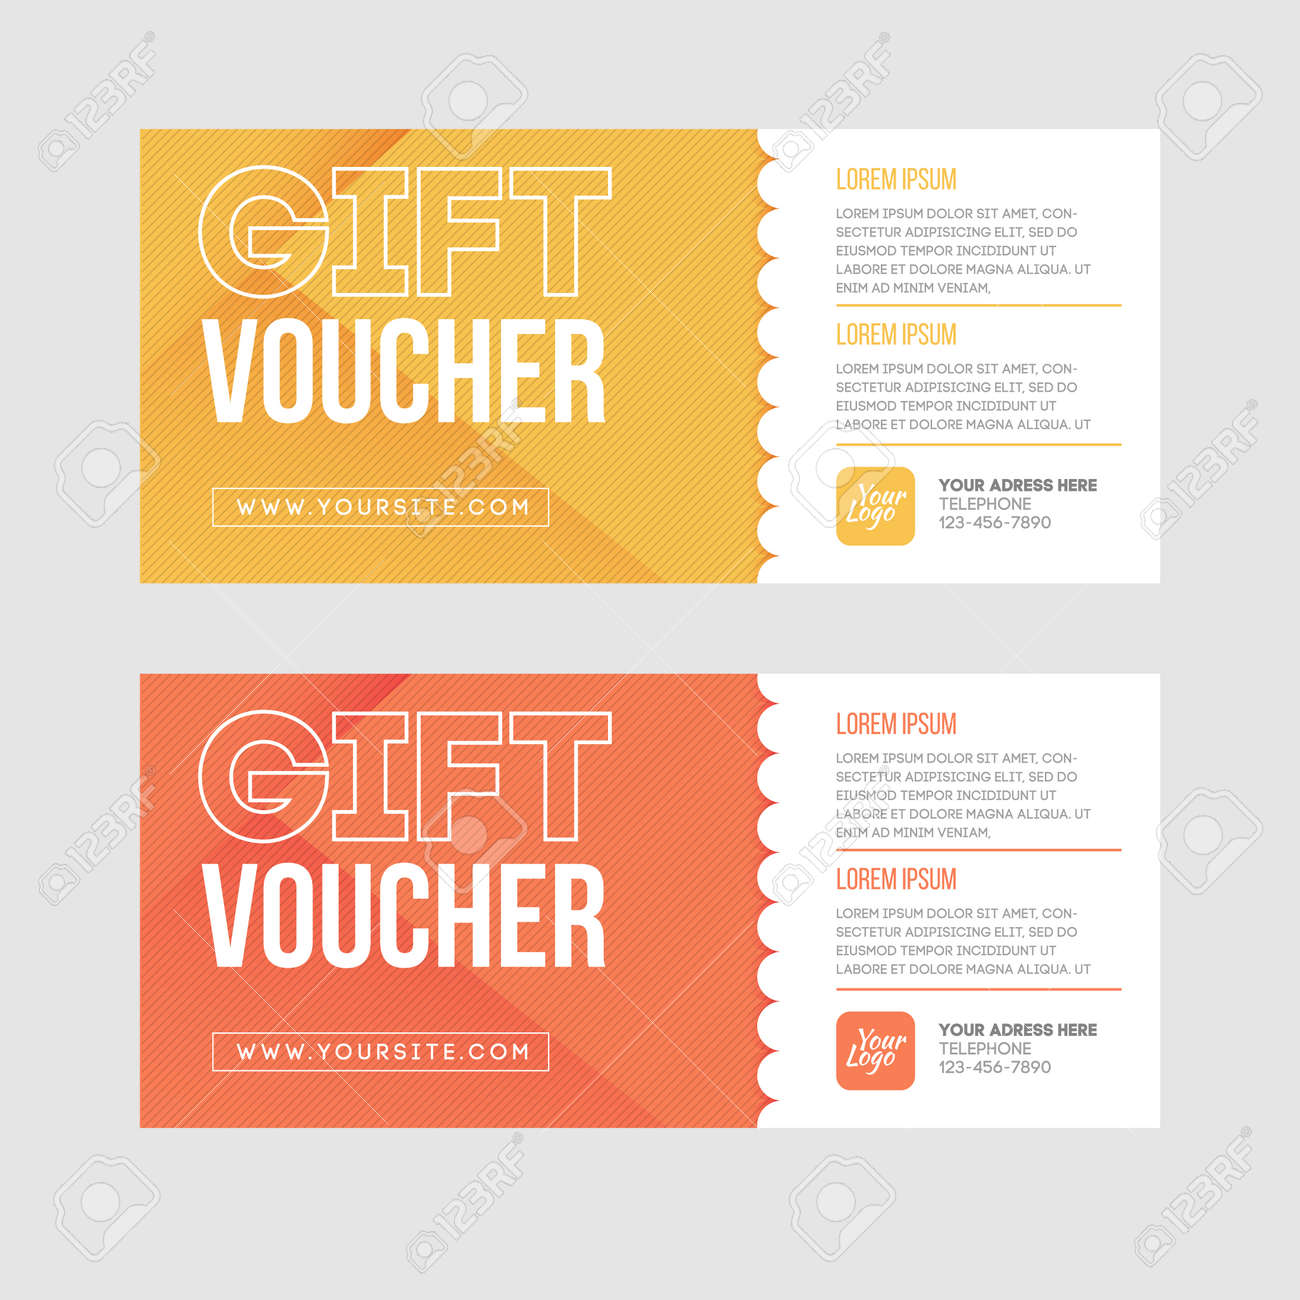 3468 Certificate Template Free Vector Illustration And – Design Gift Vouchers Free